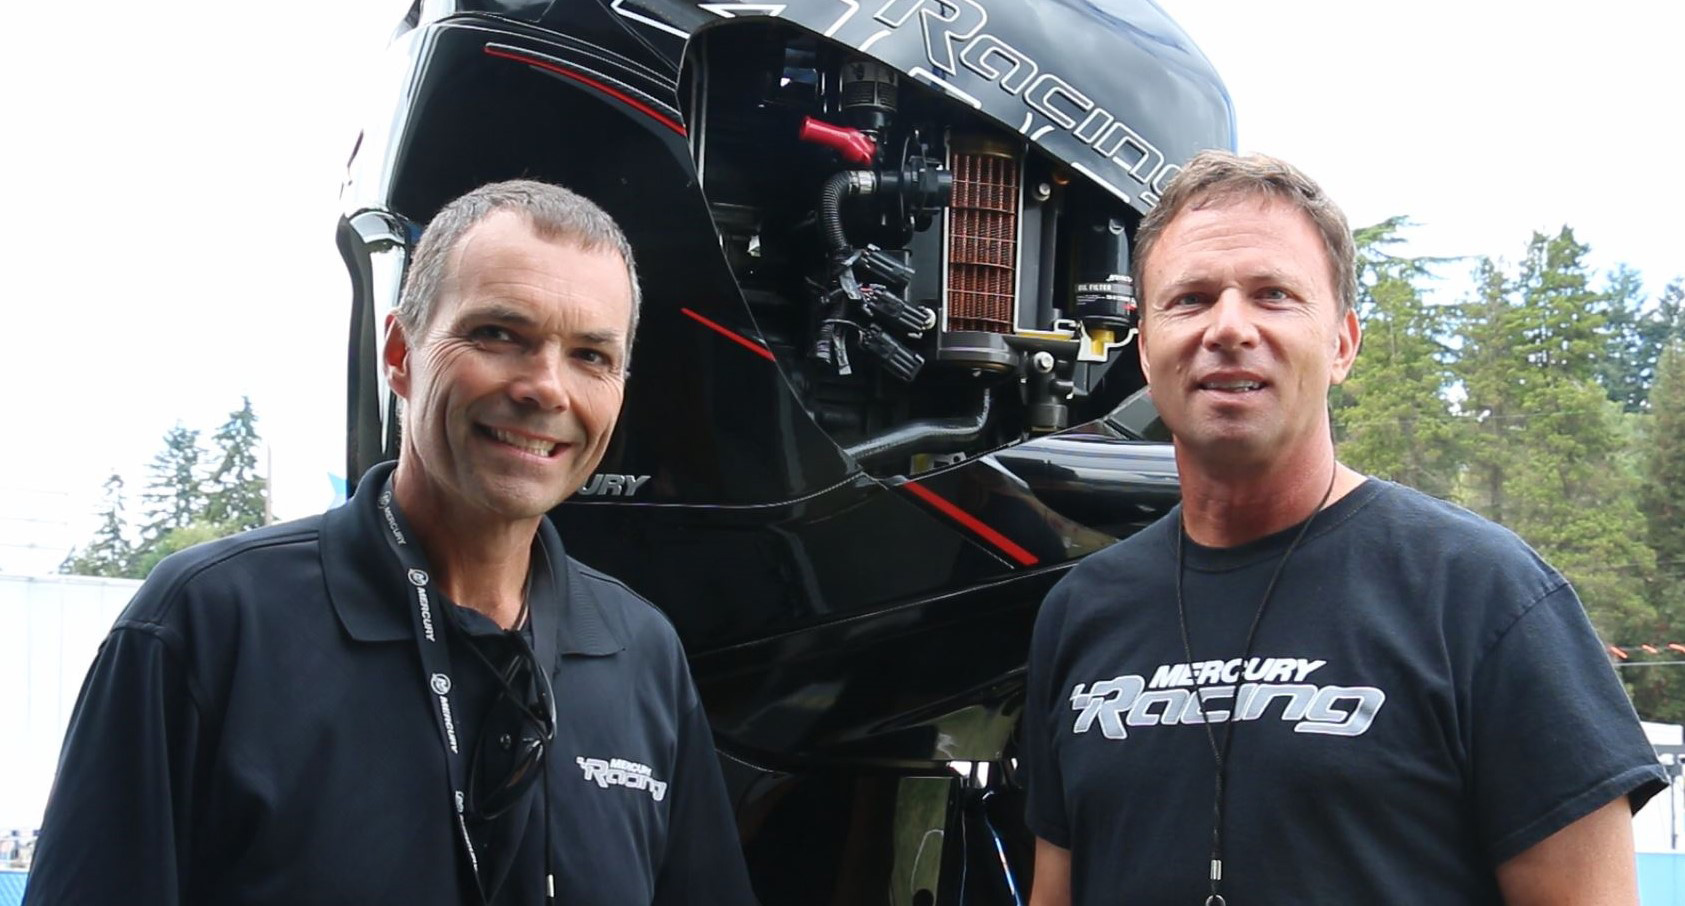 Mercury Racing's Rick Mackie and propeller program manager Scott Reichow in front of the display vehicles Verado 400R outboard cutaway.